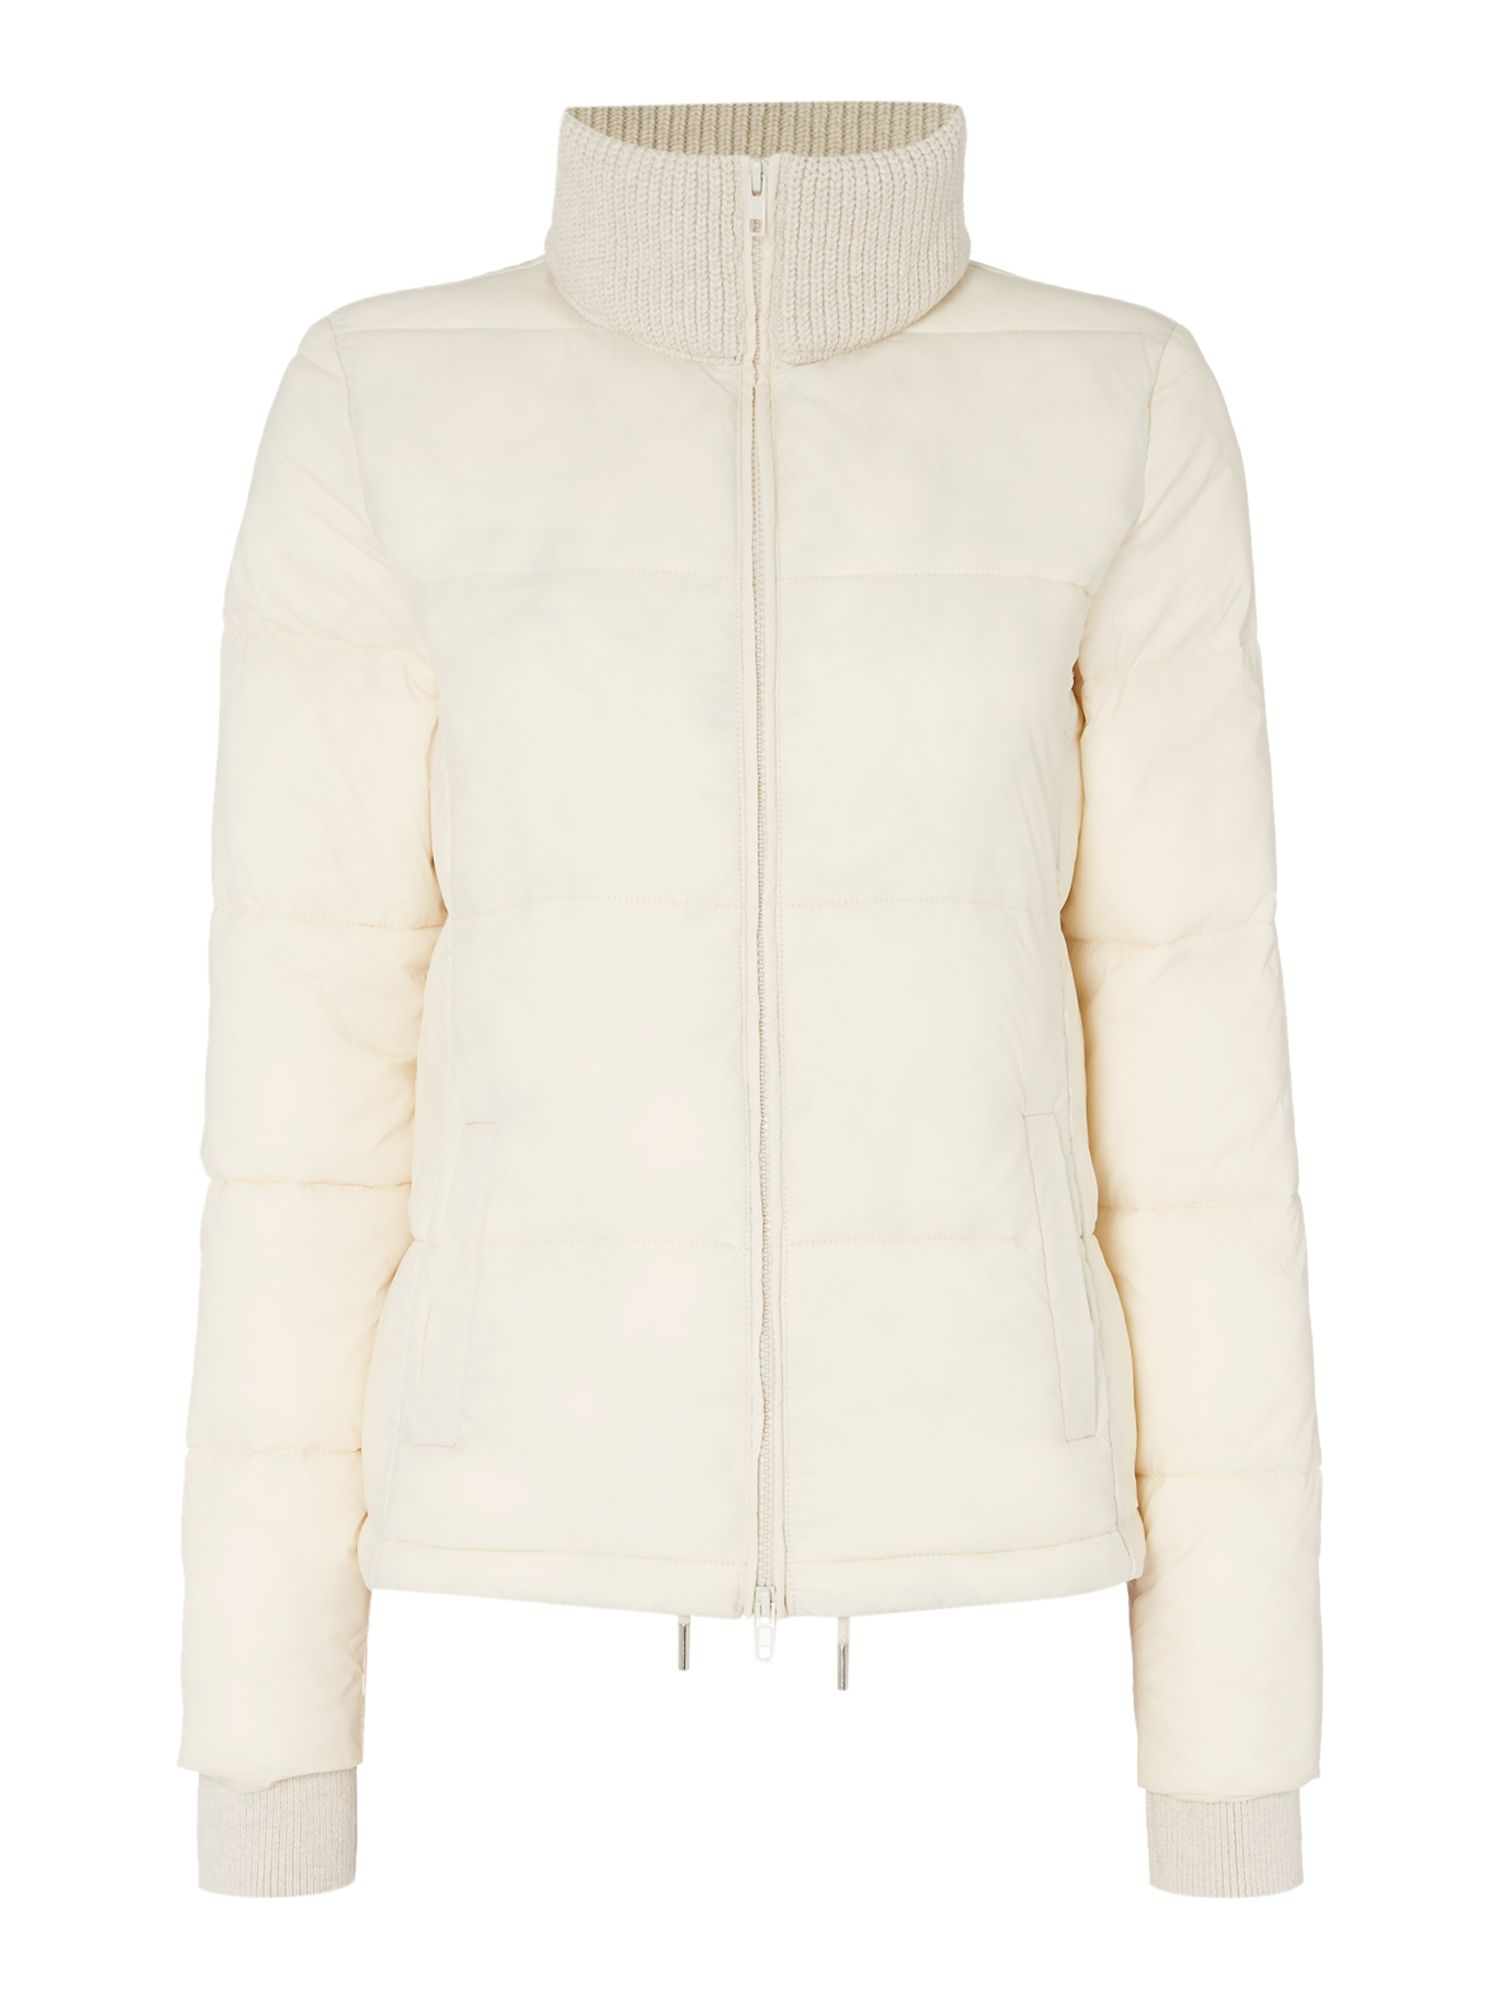 Oui Quilted Jacket, Cream